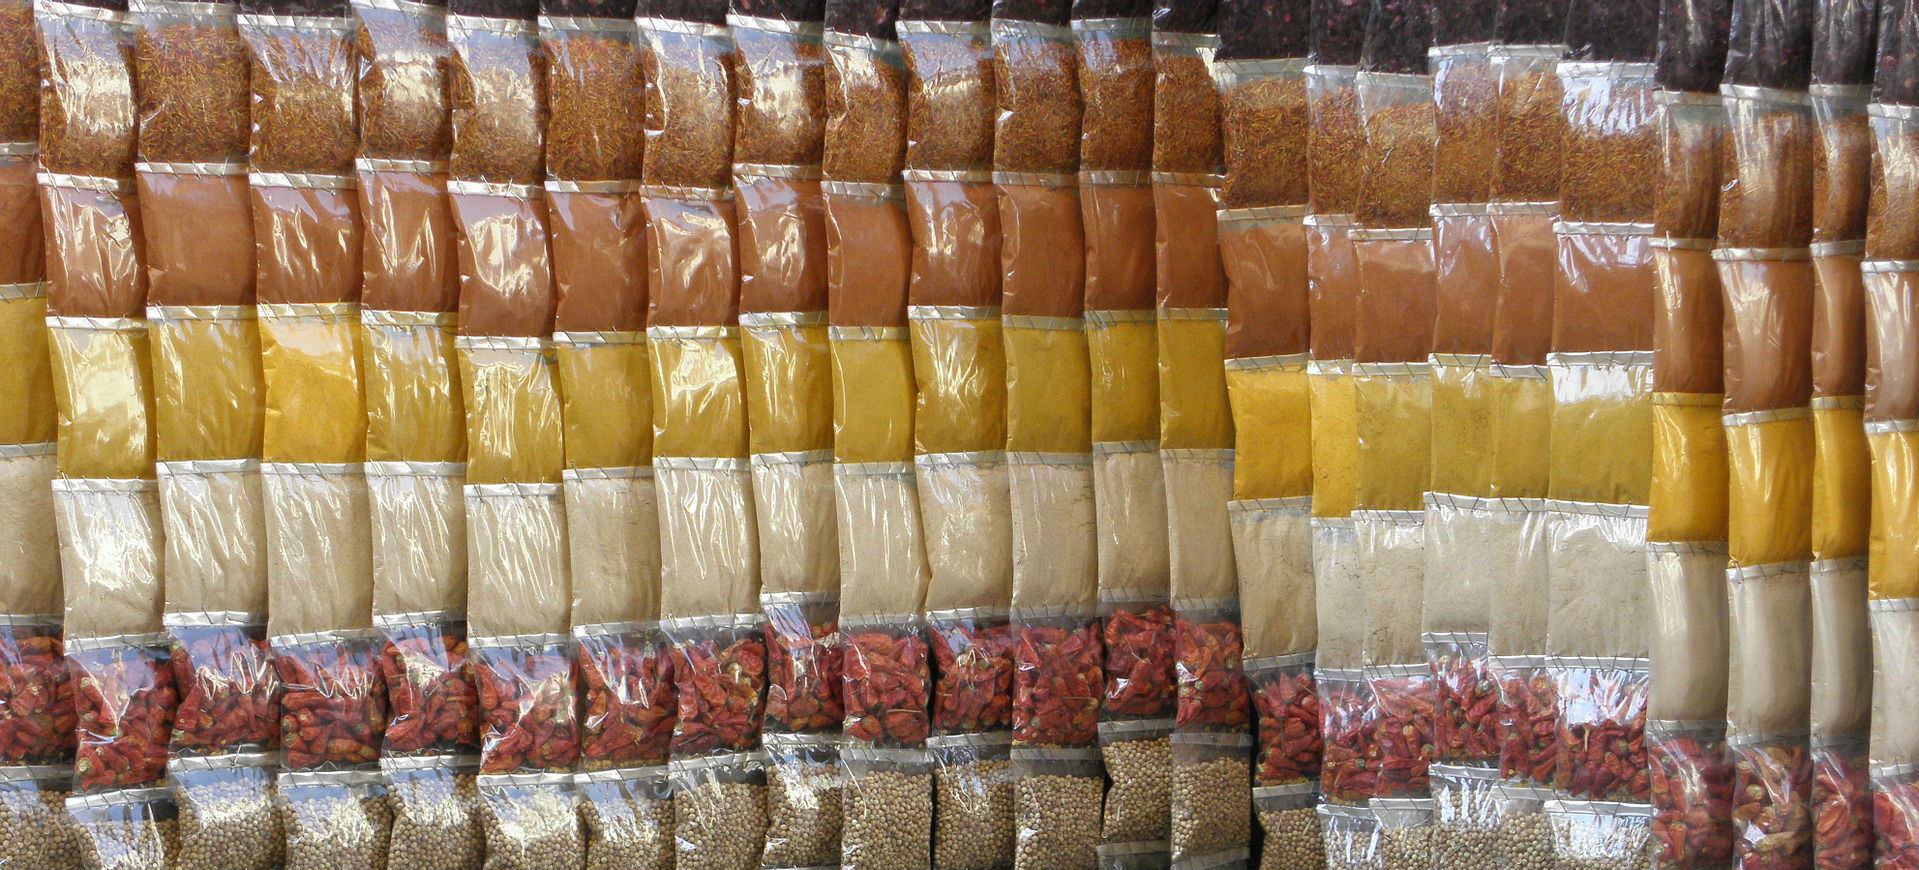 Even the ancient spice trade in Egypt has upgraded to plastic bags. It makes you wonder -- is the convenience really worth the potential harm?